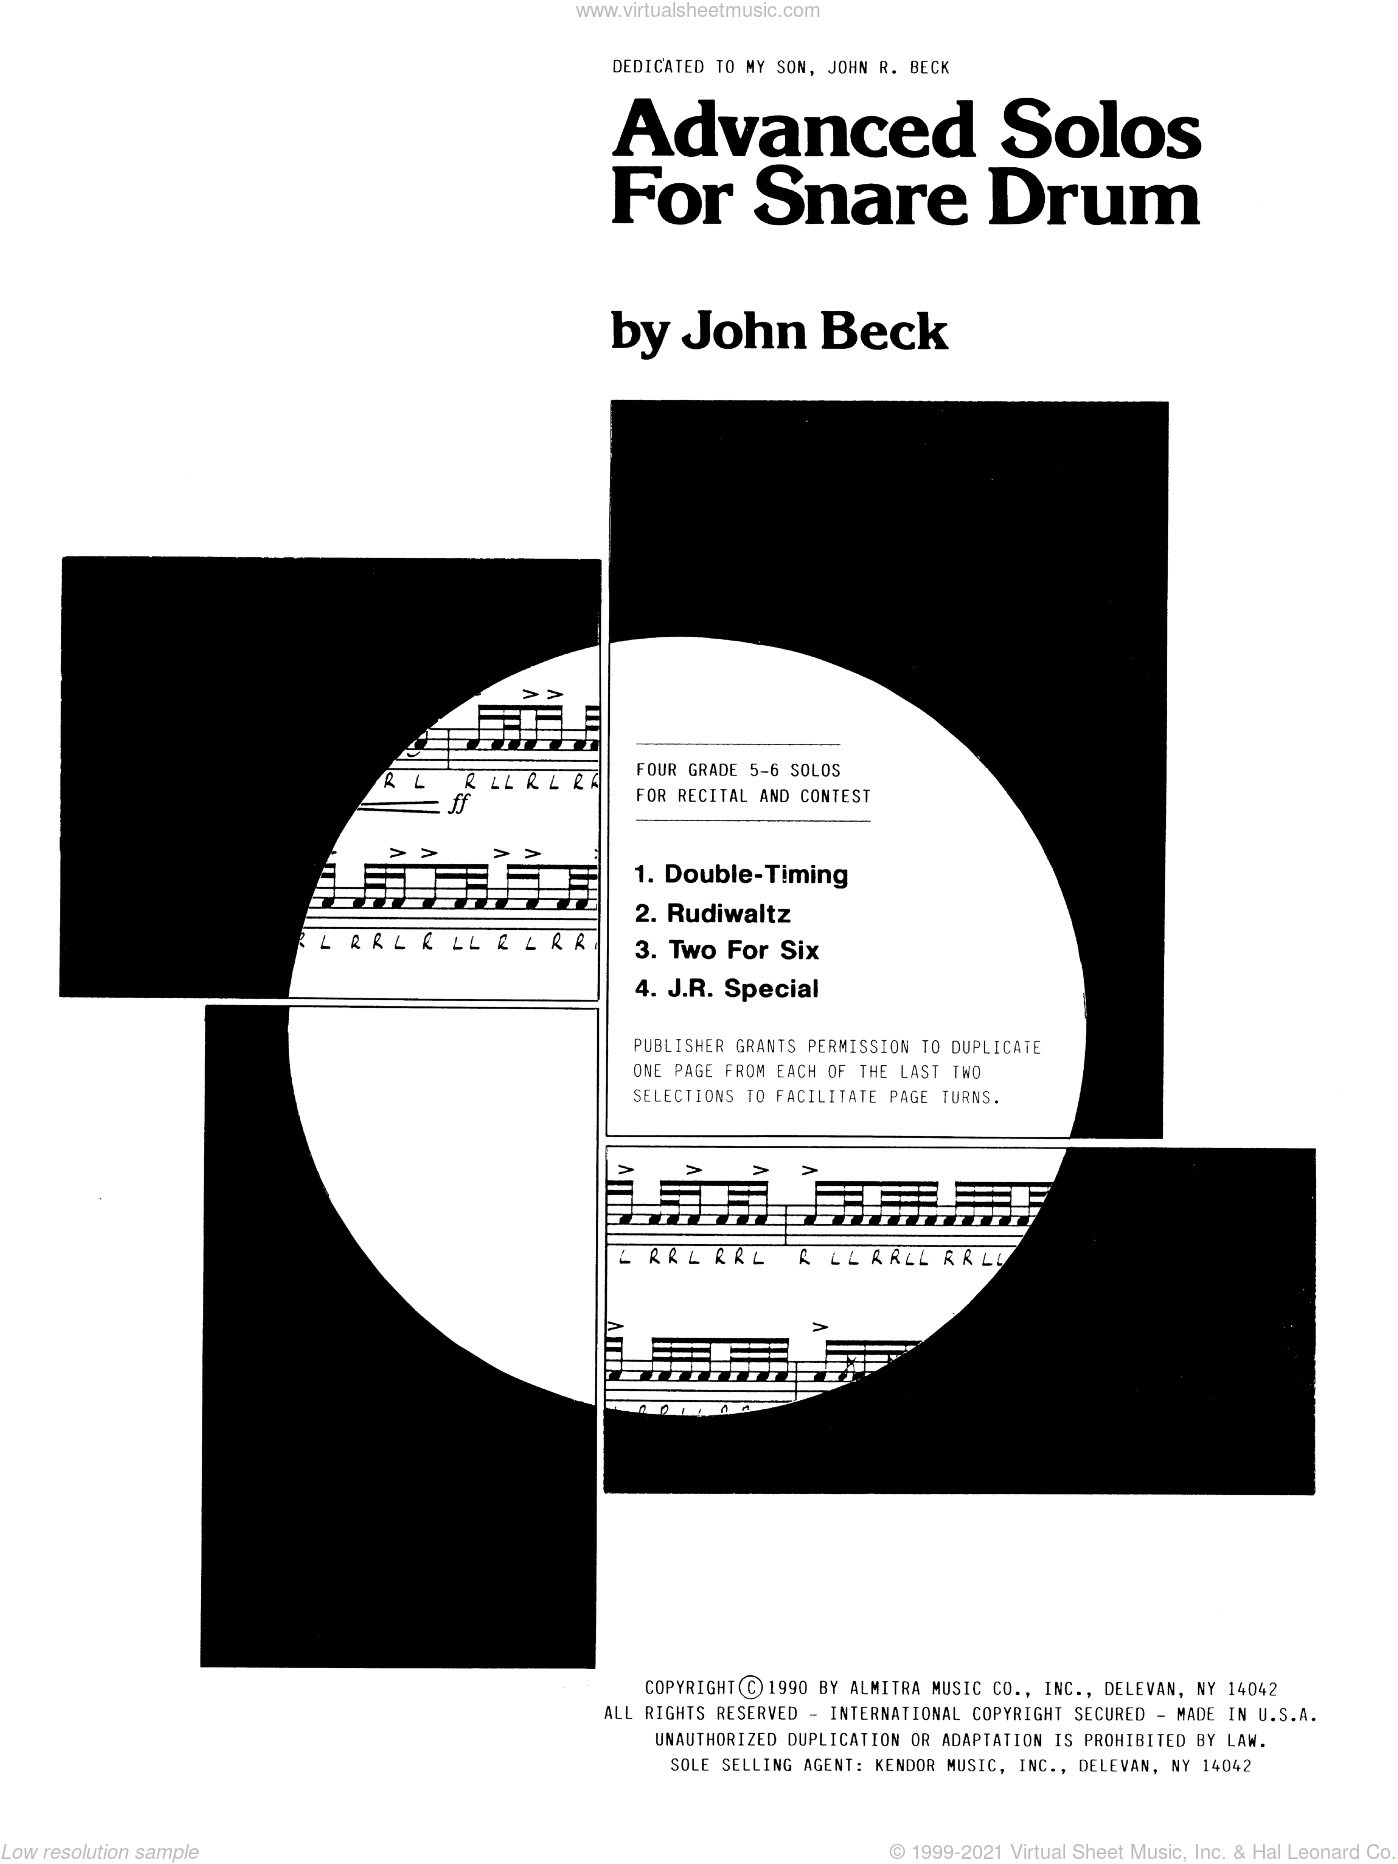 Advanced Solos For Snare Drum sheet music for percussions by John H. Beck, classical score, intermediate skill level